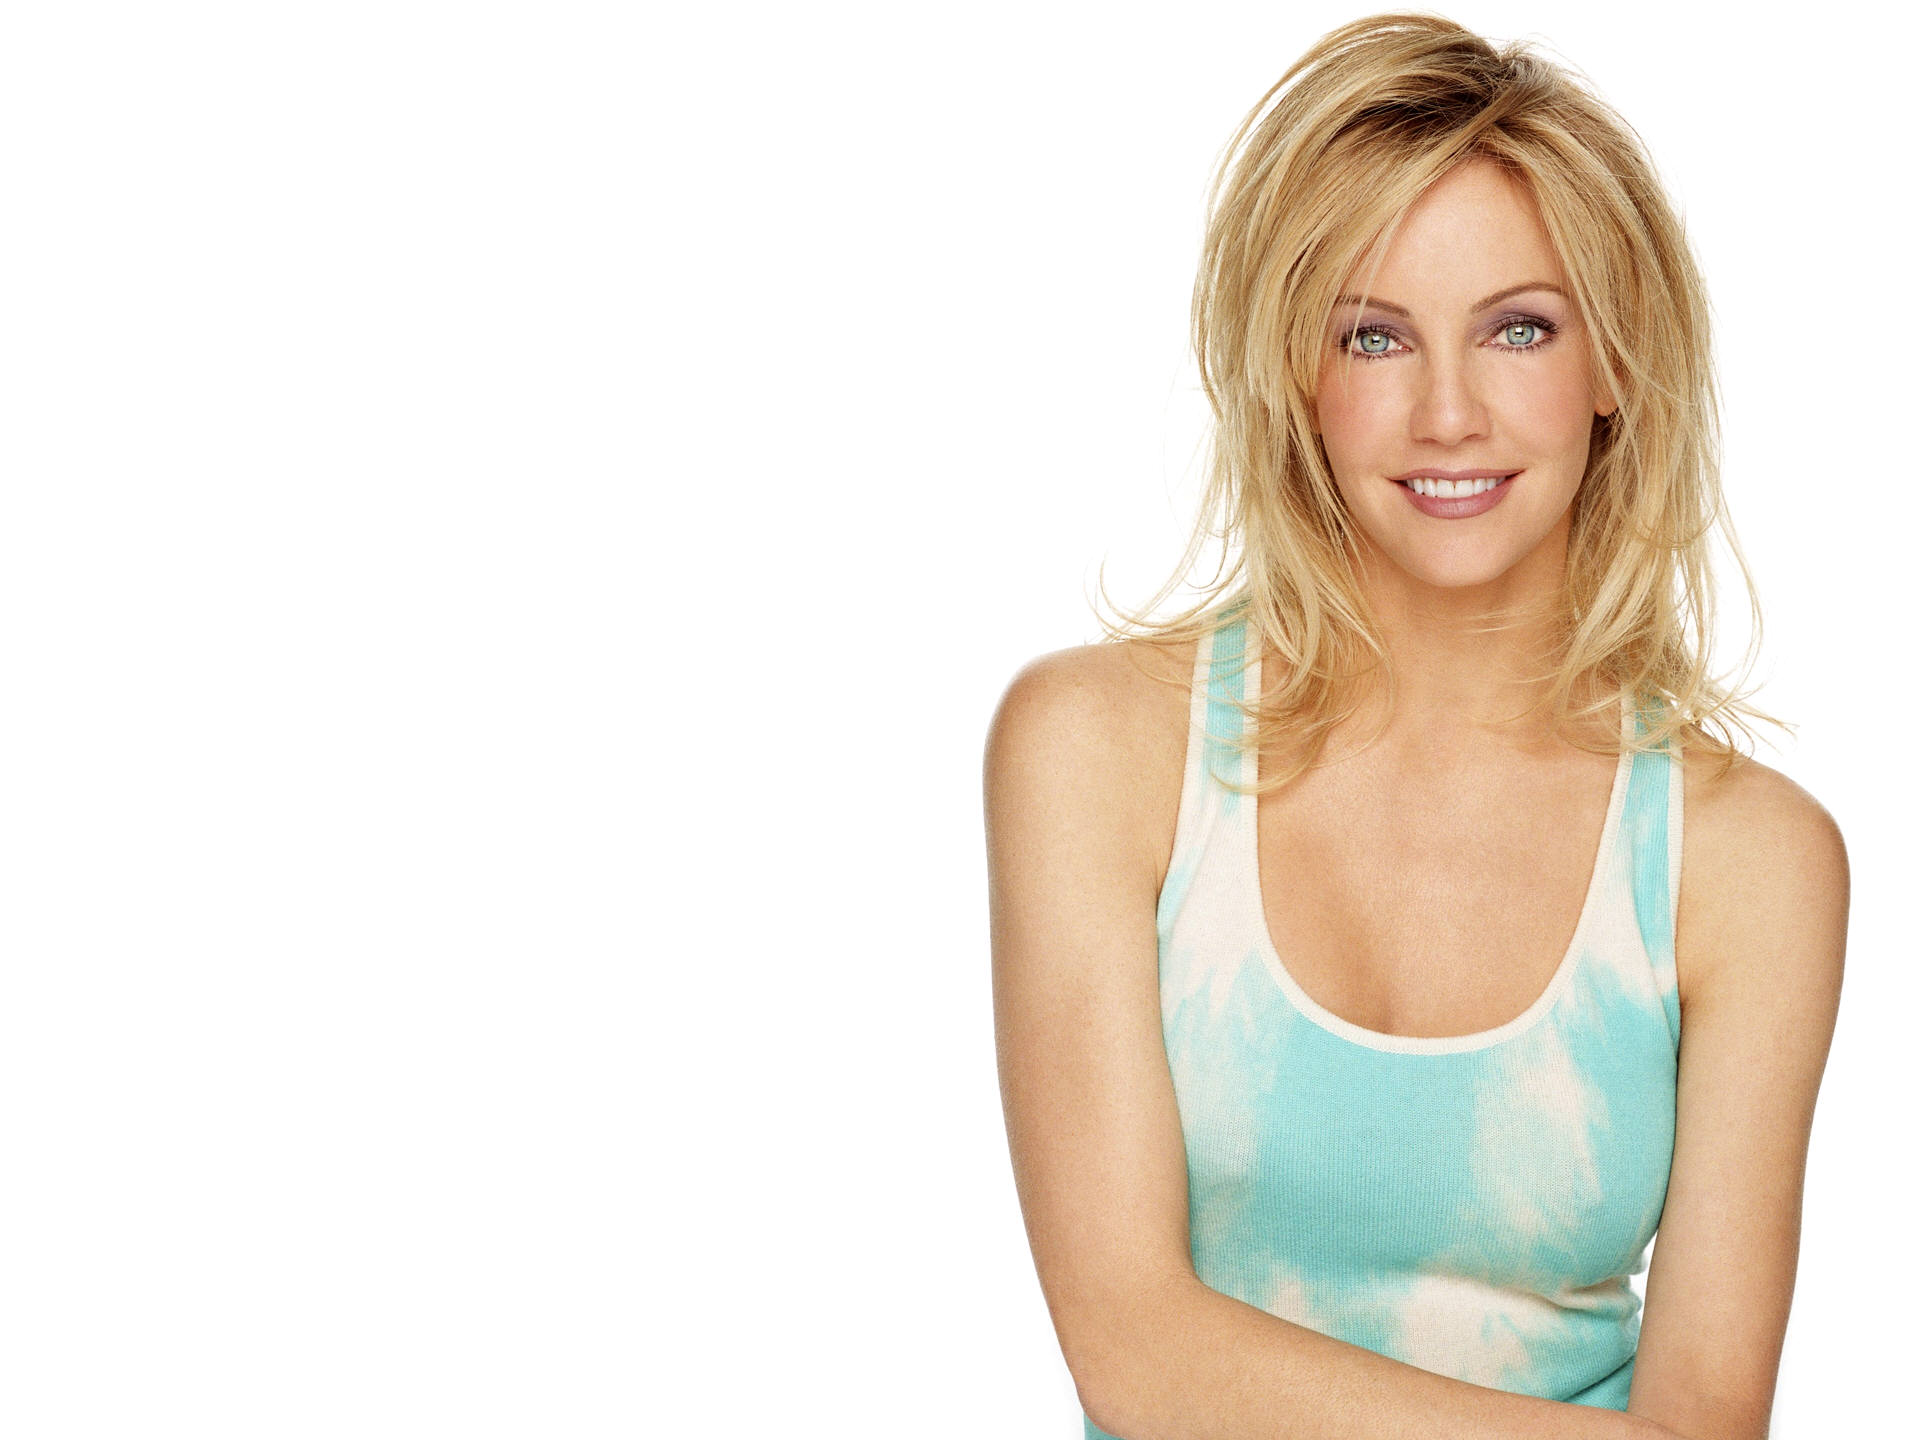 Heather Locklear 2014